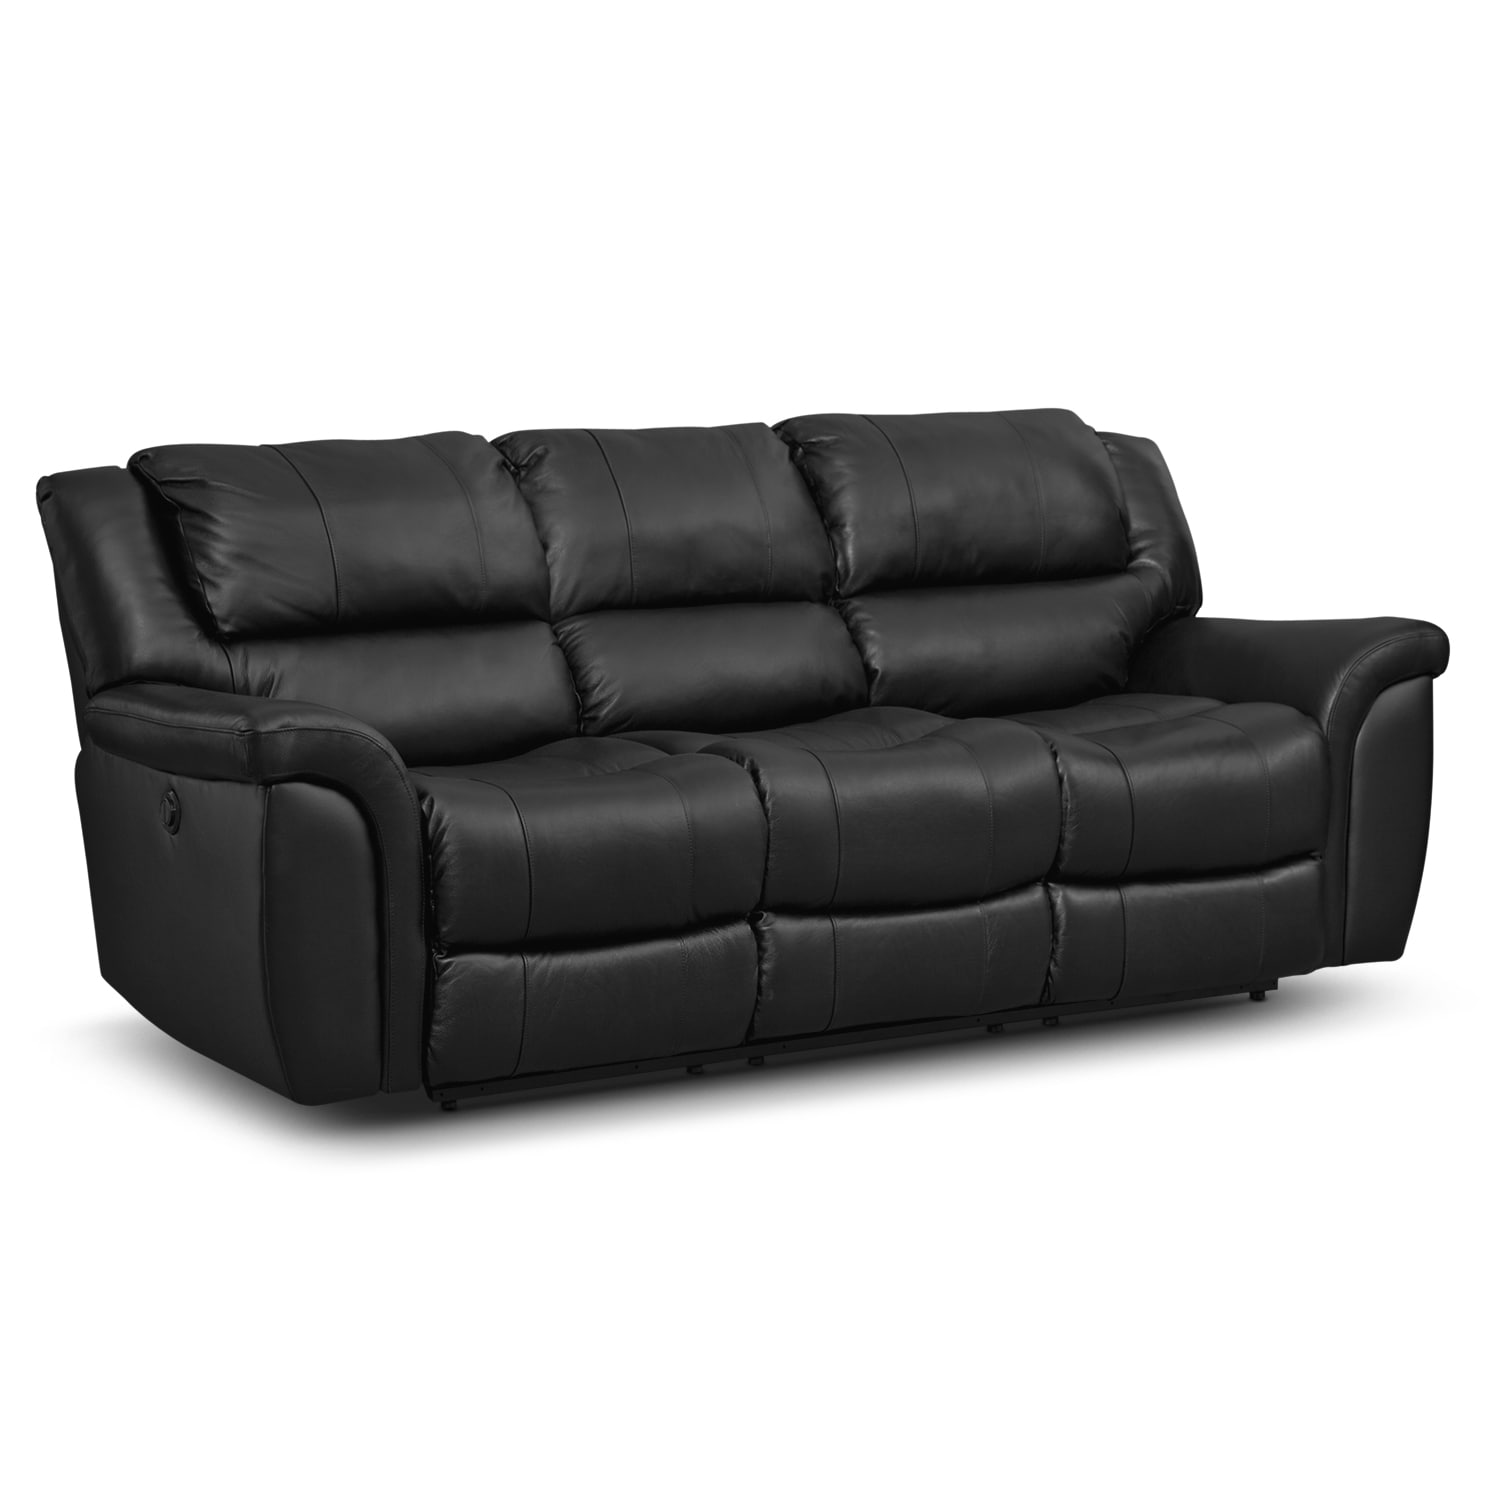 Sams Club Leather Recliners